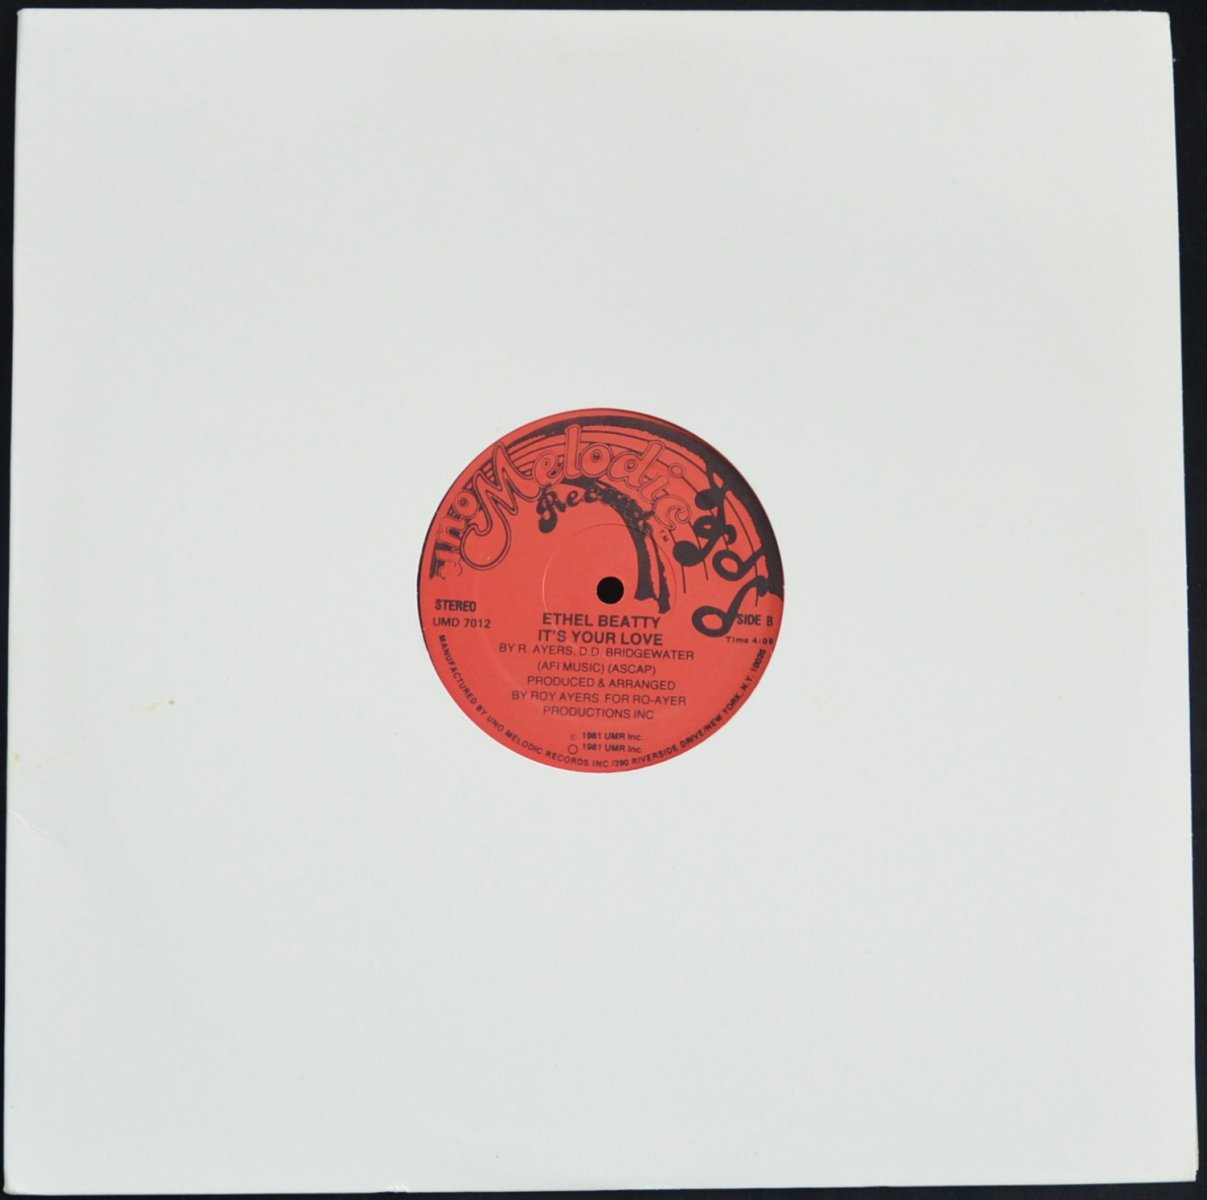 ETHEL BEATTY / I KNOW YOU CARE / IT'S YOUR LOVE (12